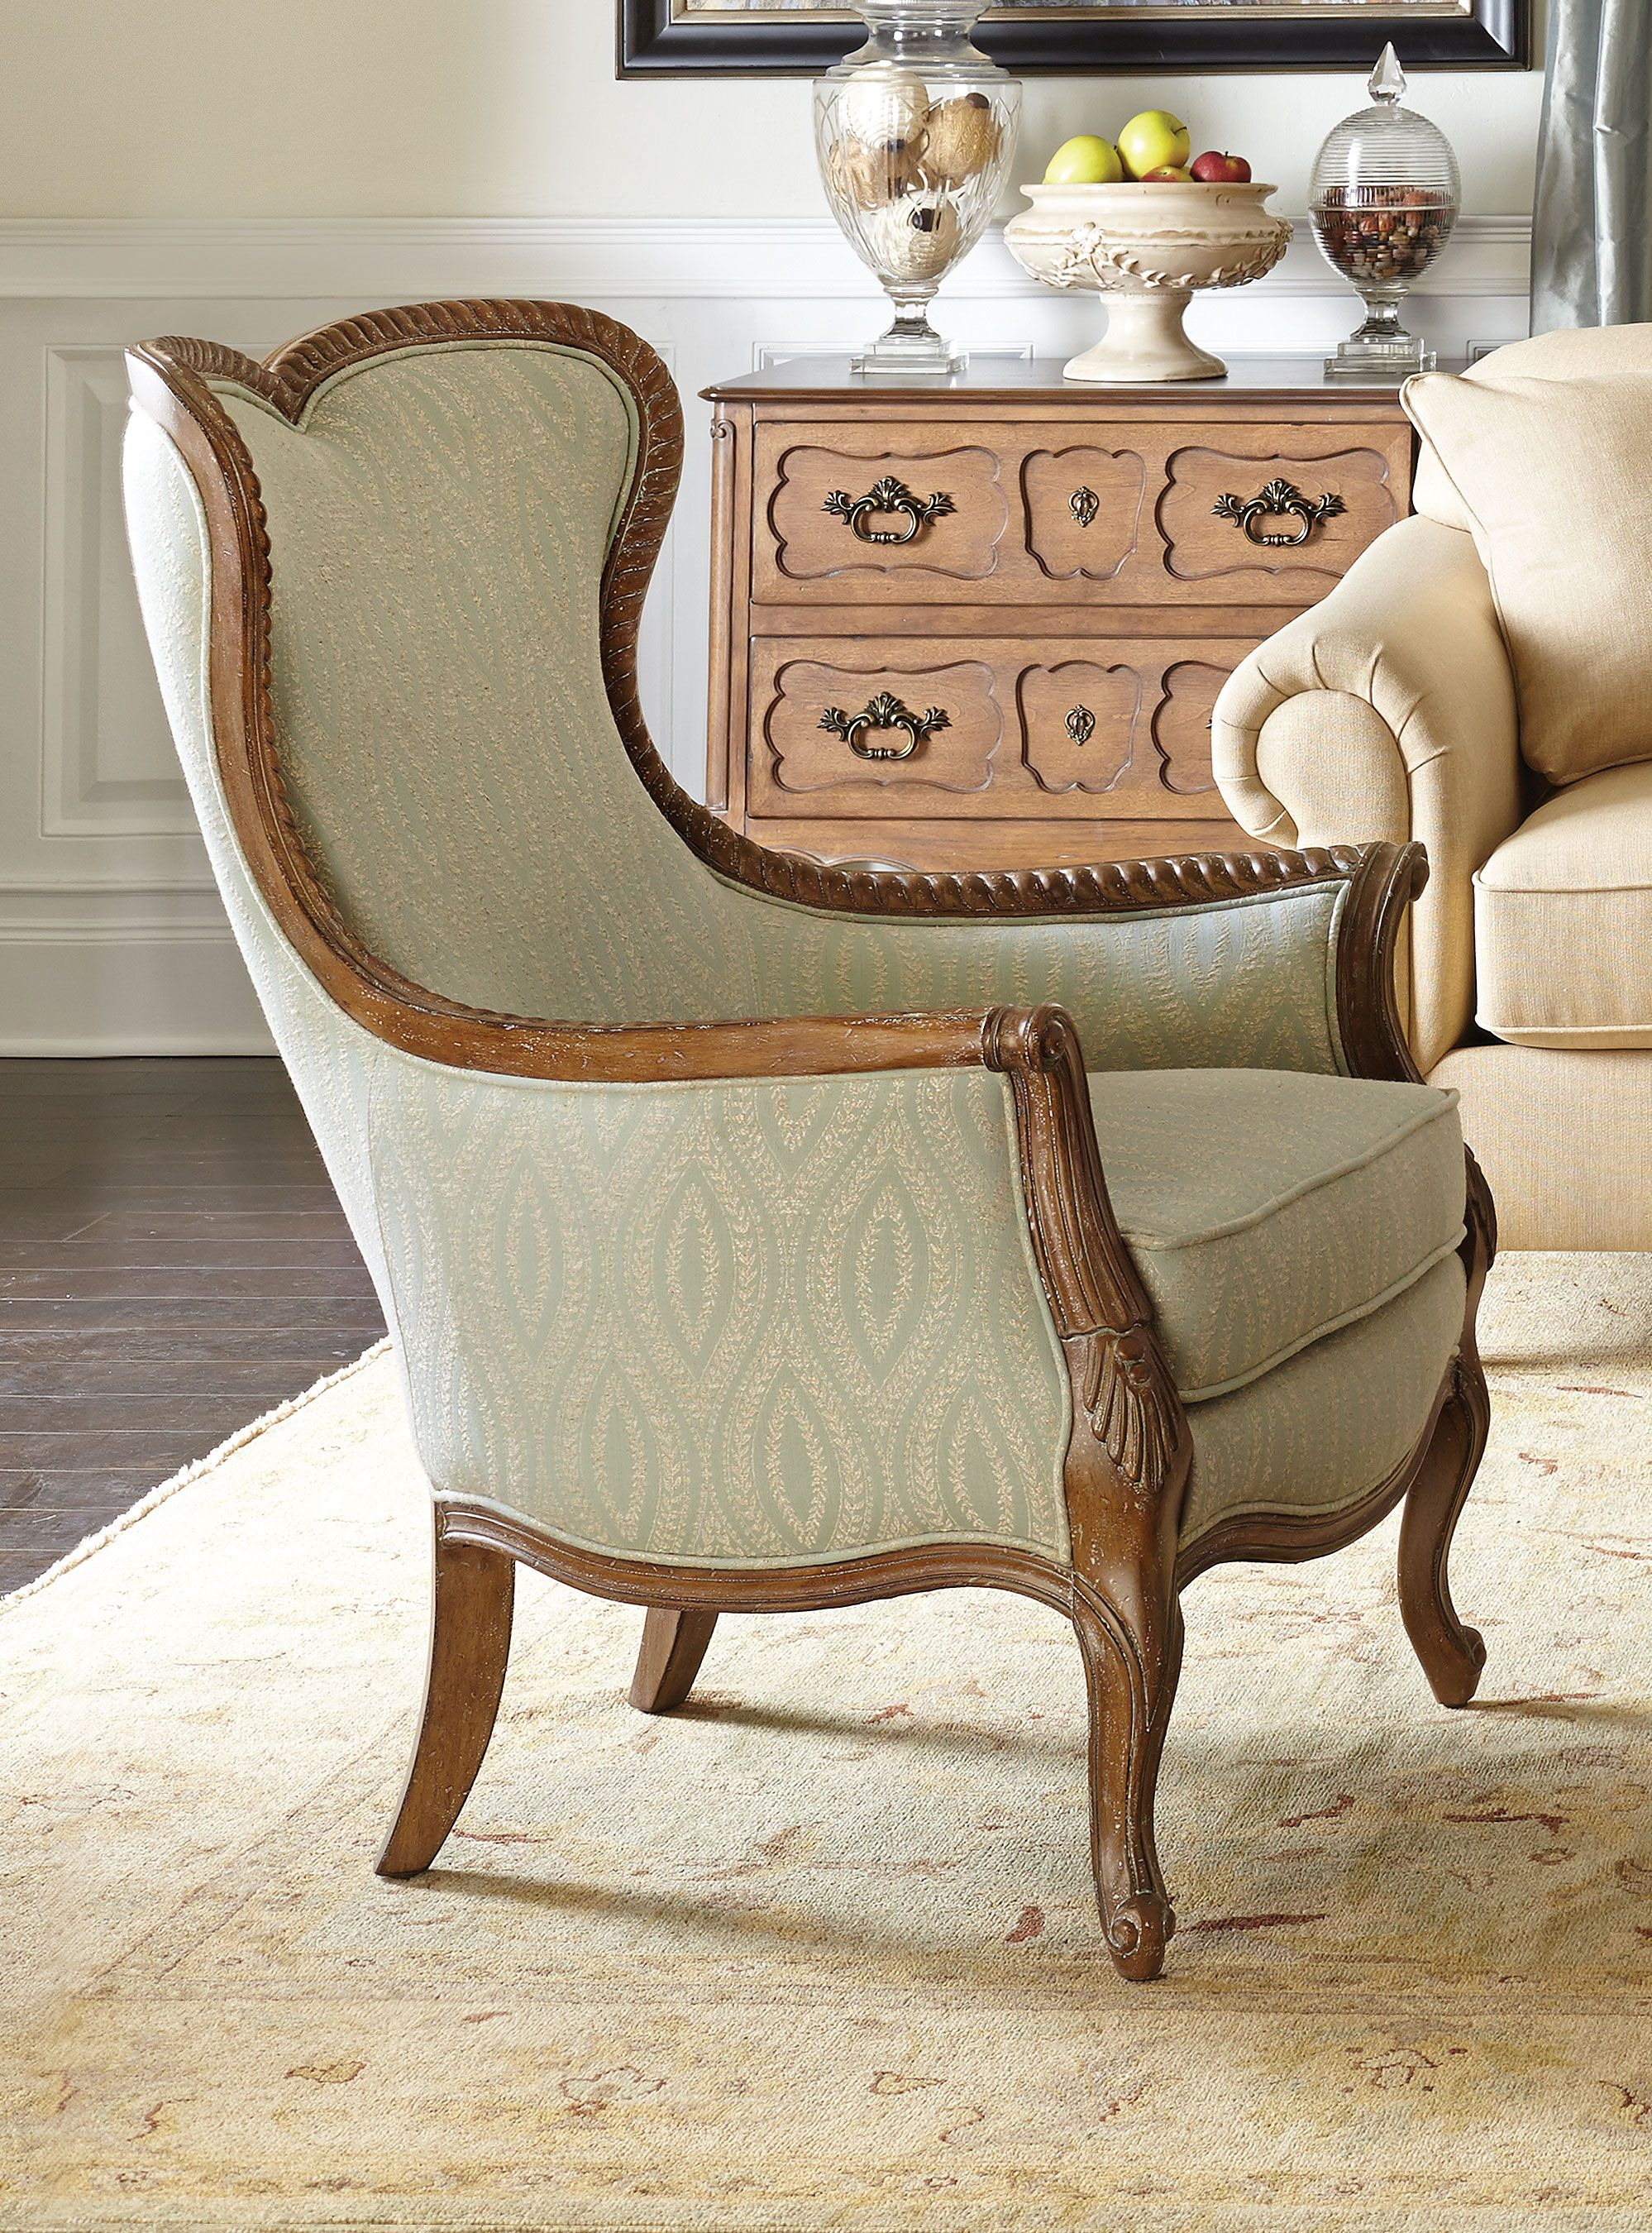 Contemporary Wingback Chairs Design For Your Furniture Ideas: Furniture Wingback  Chairs Design With Cream Rugs